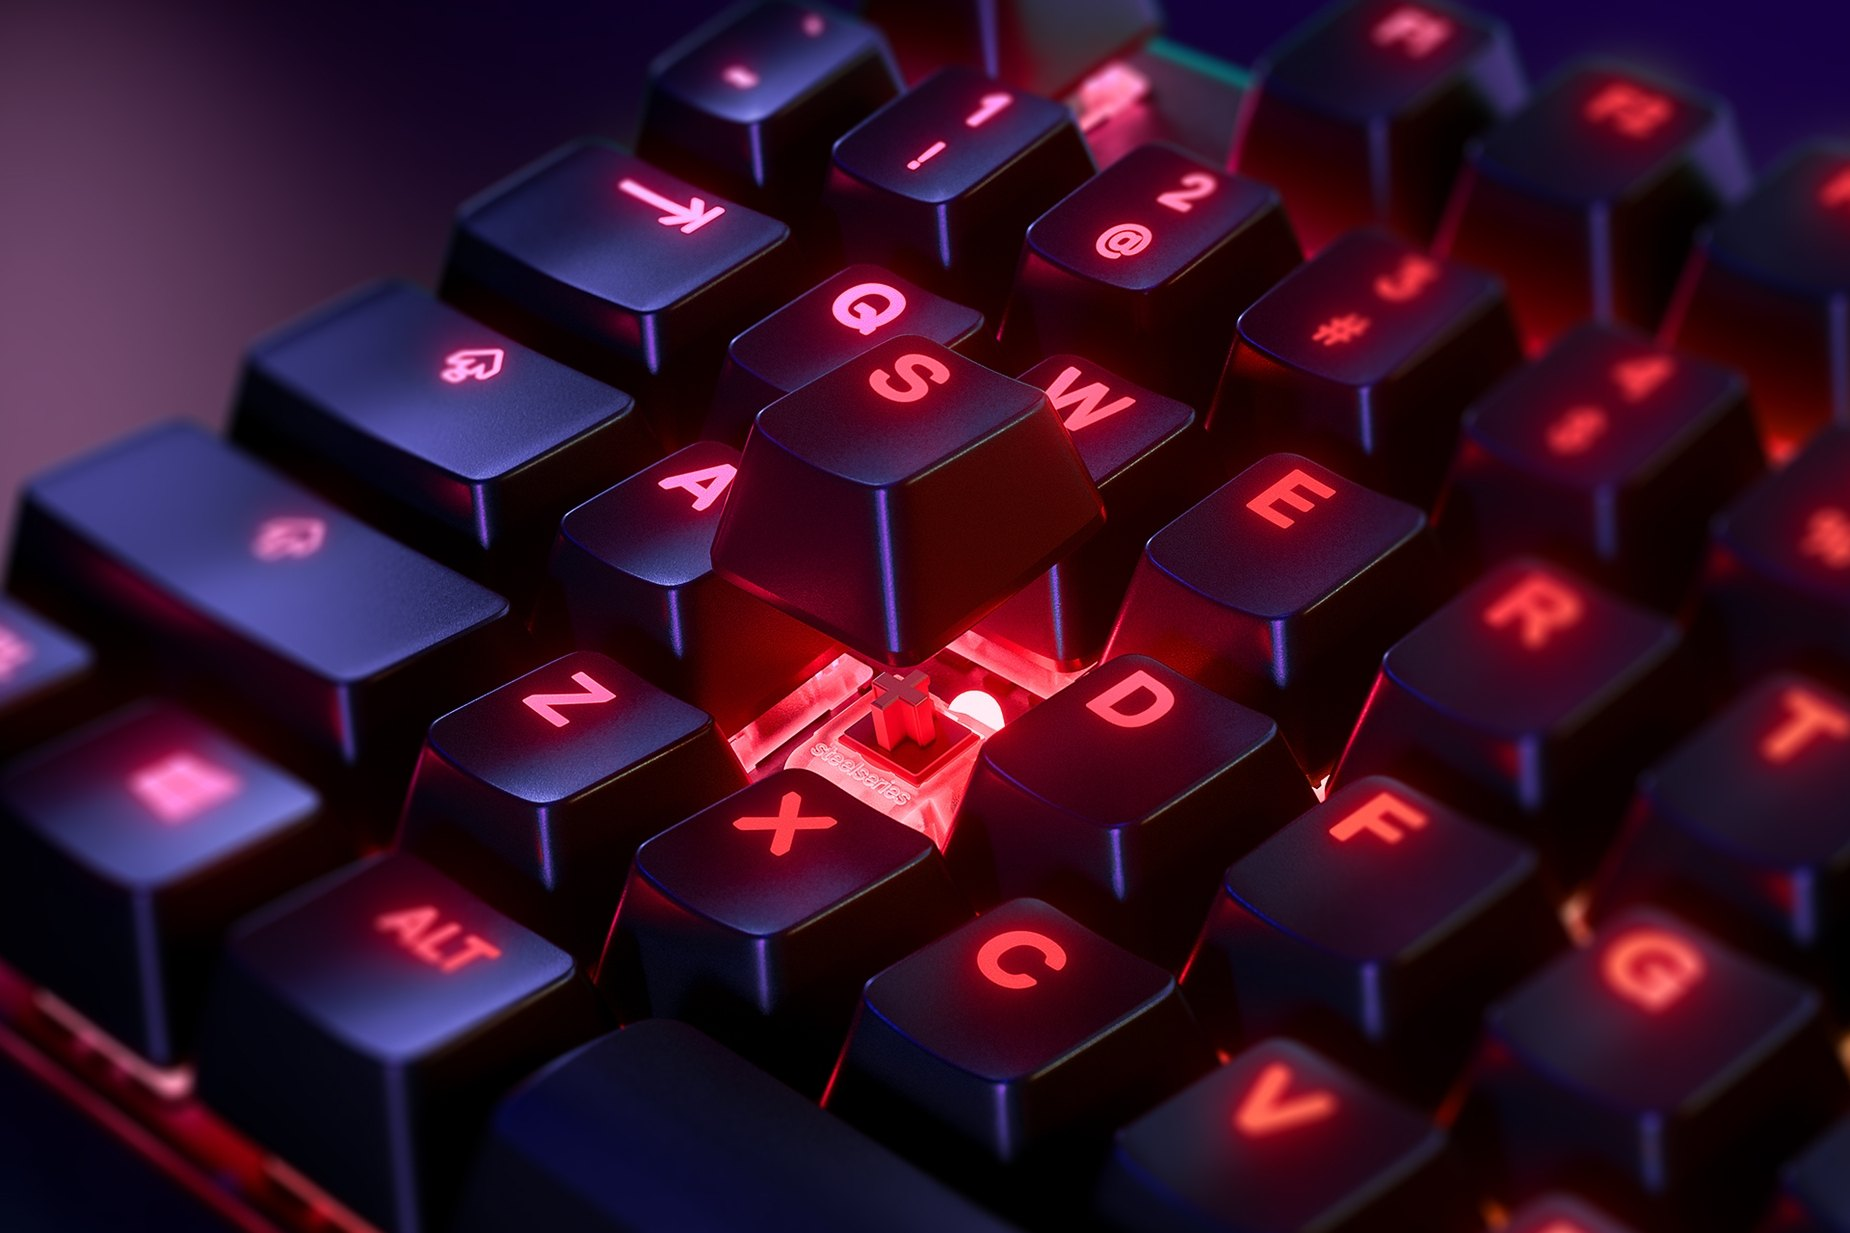 Zoomed in view of a single key on the French - Apex 7 TKL (Kırmızı Anahtar) gaming keyboard, the key is raised up to show the SteelSeries QX2 Mechanical RGB Switch underneath